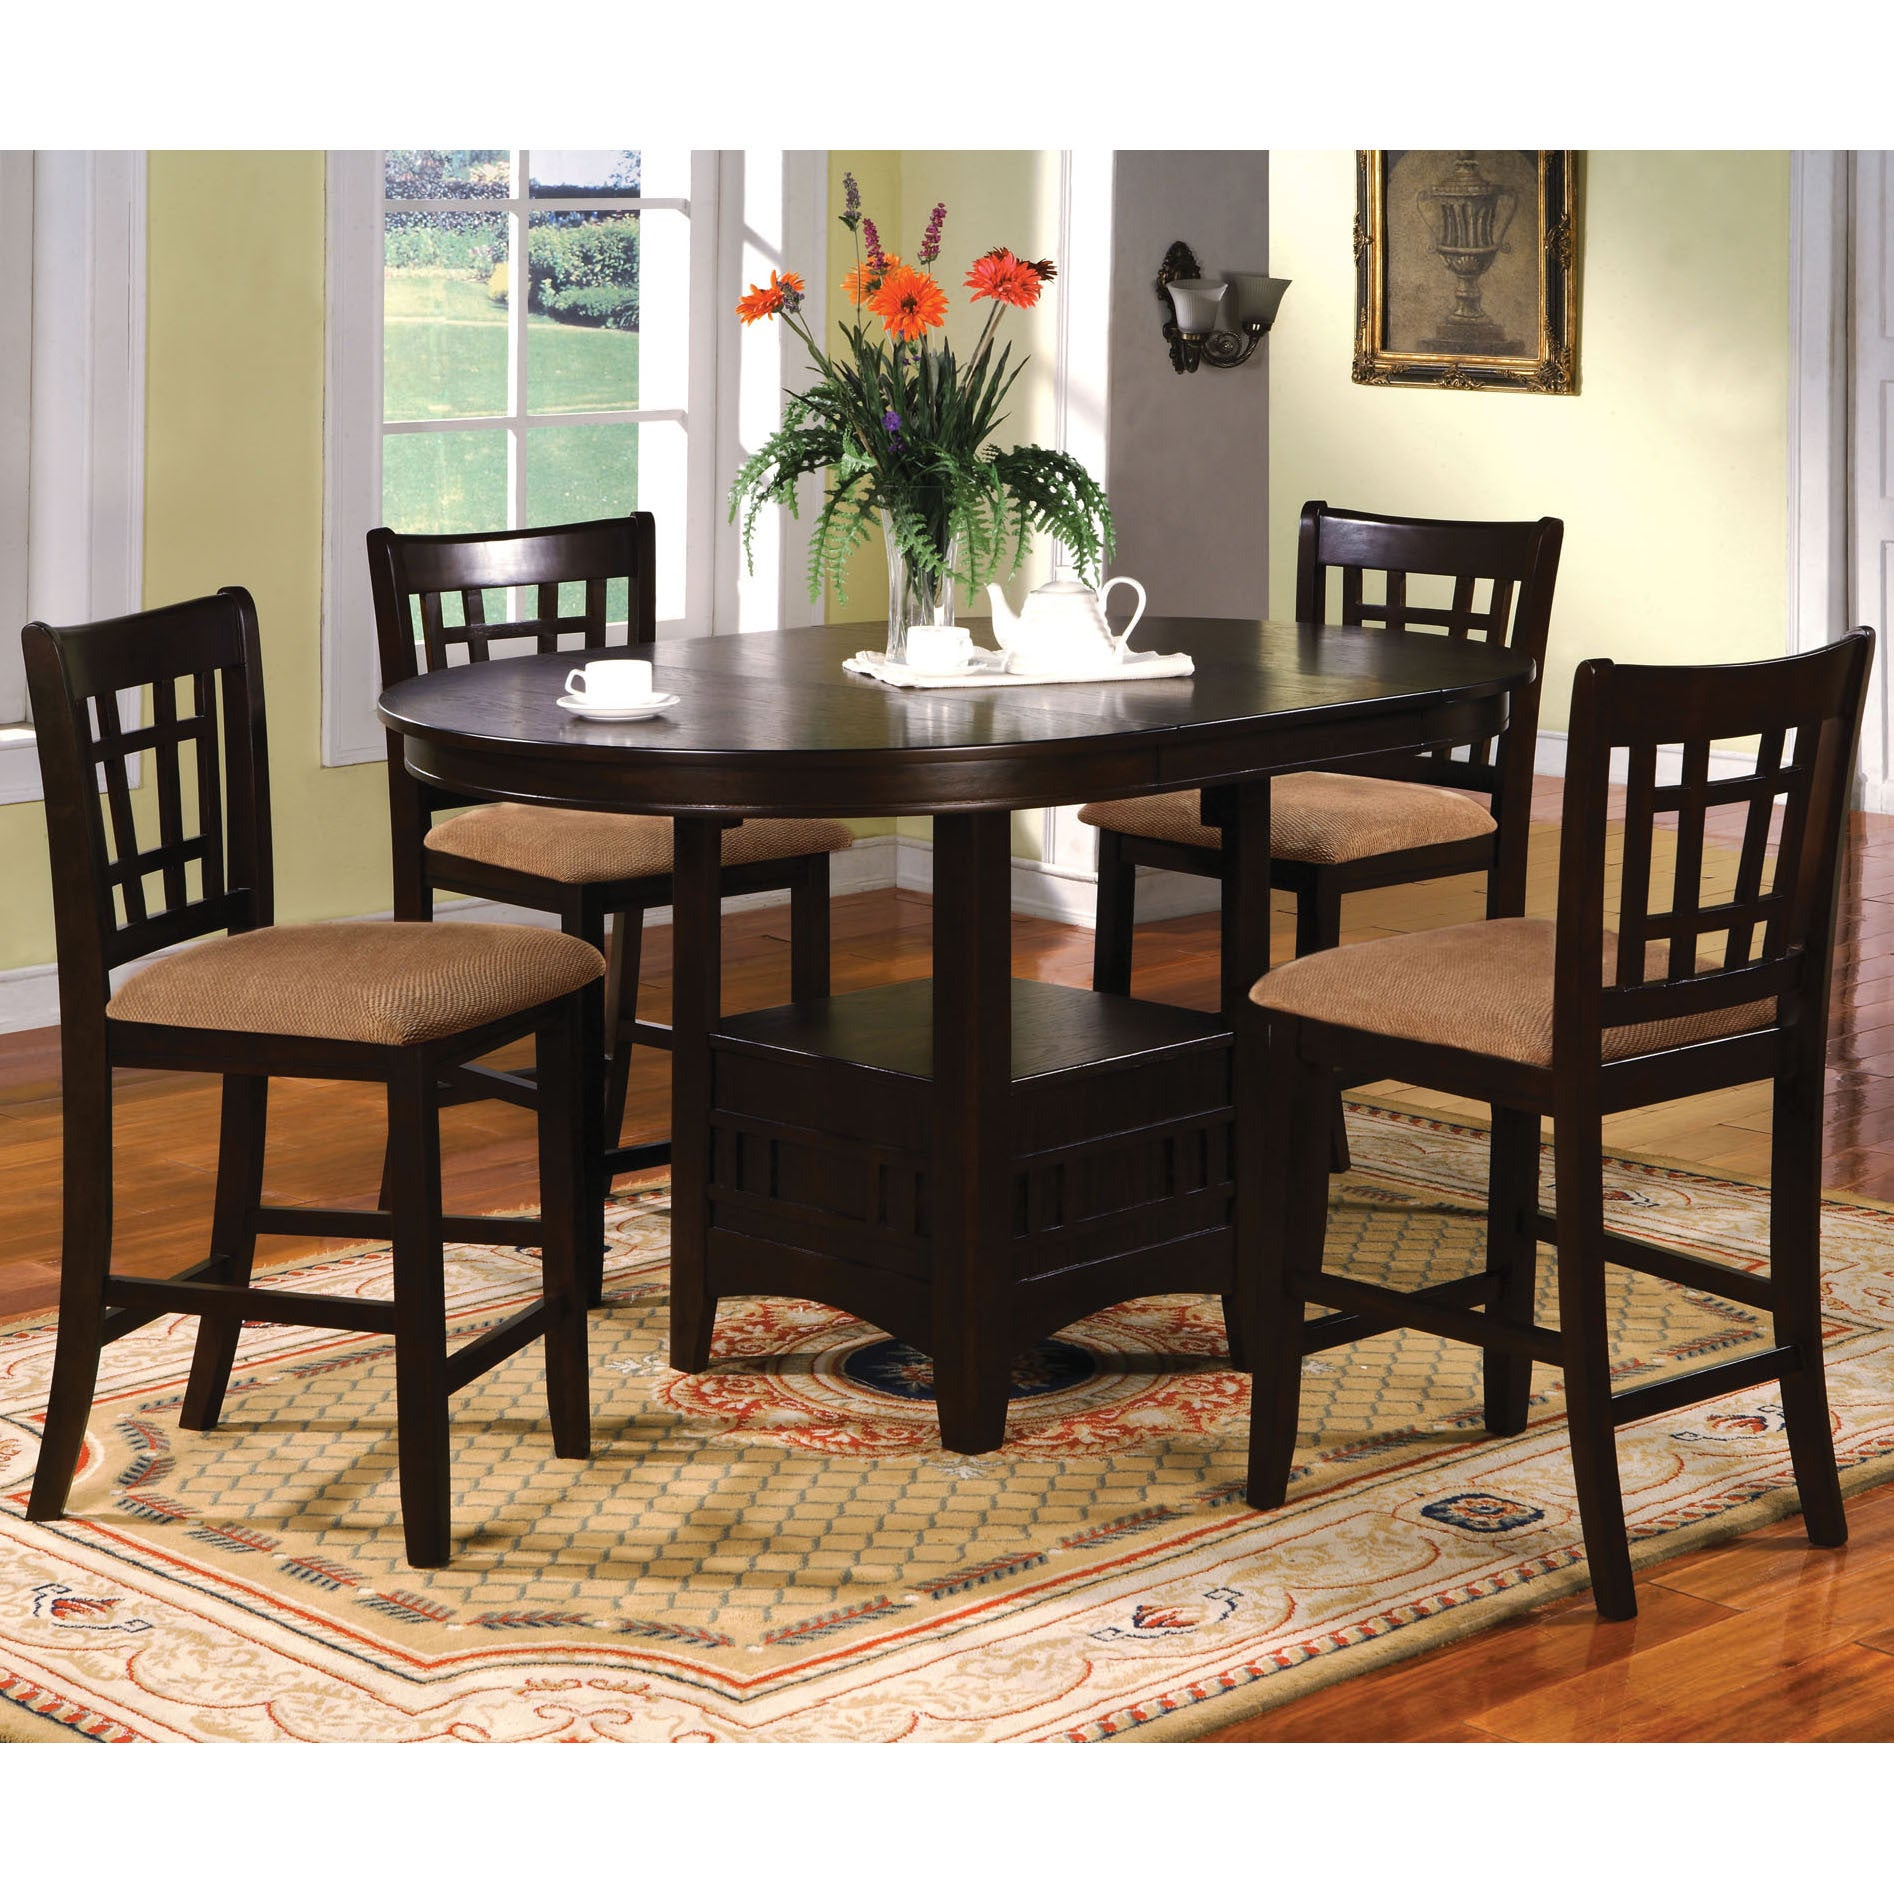 Superbe Shop Furniture Of America Toureille 5 Piece Expandable Round/Oval Counter  Height Set   On Sale   Free Shipping Today   Overstock.com   9273613